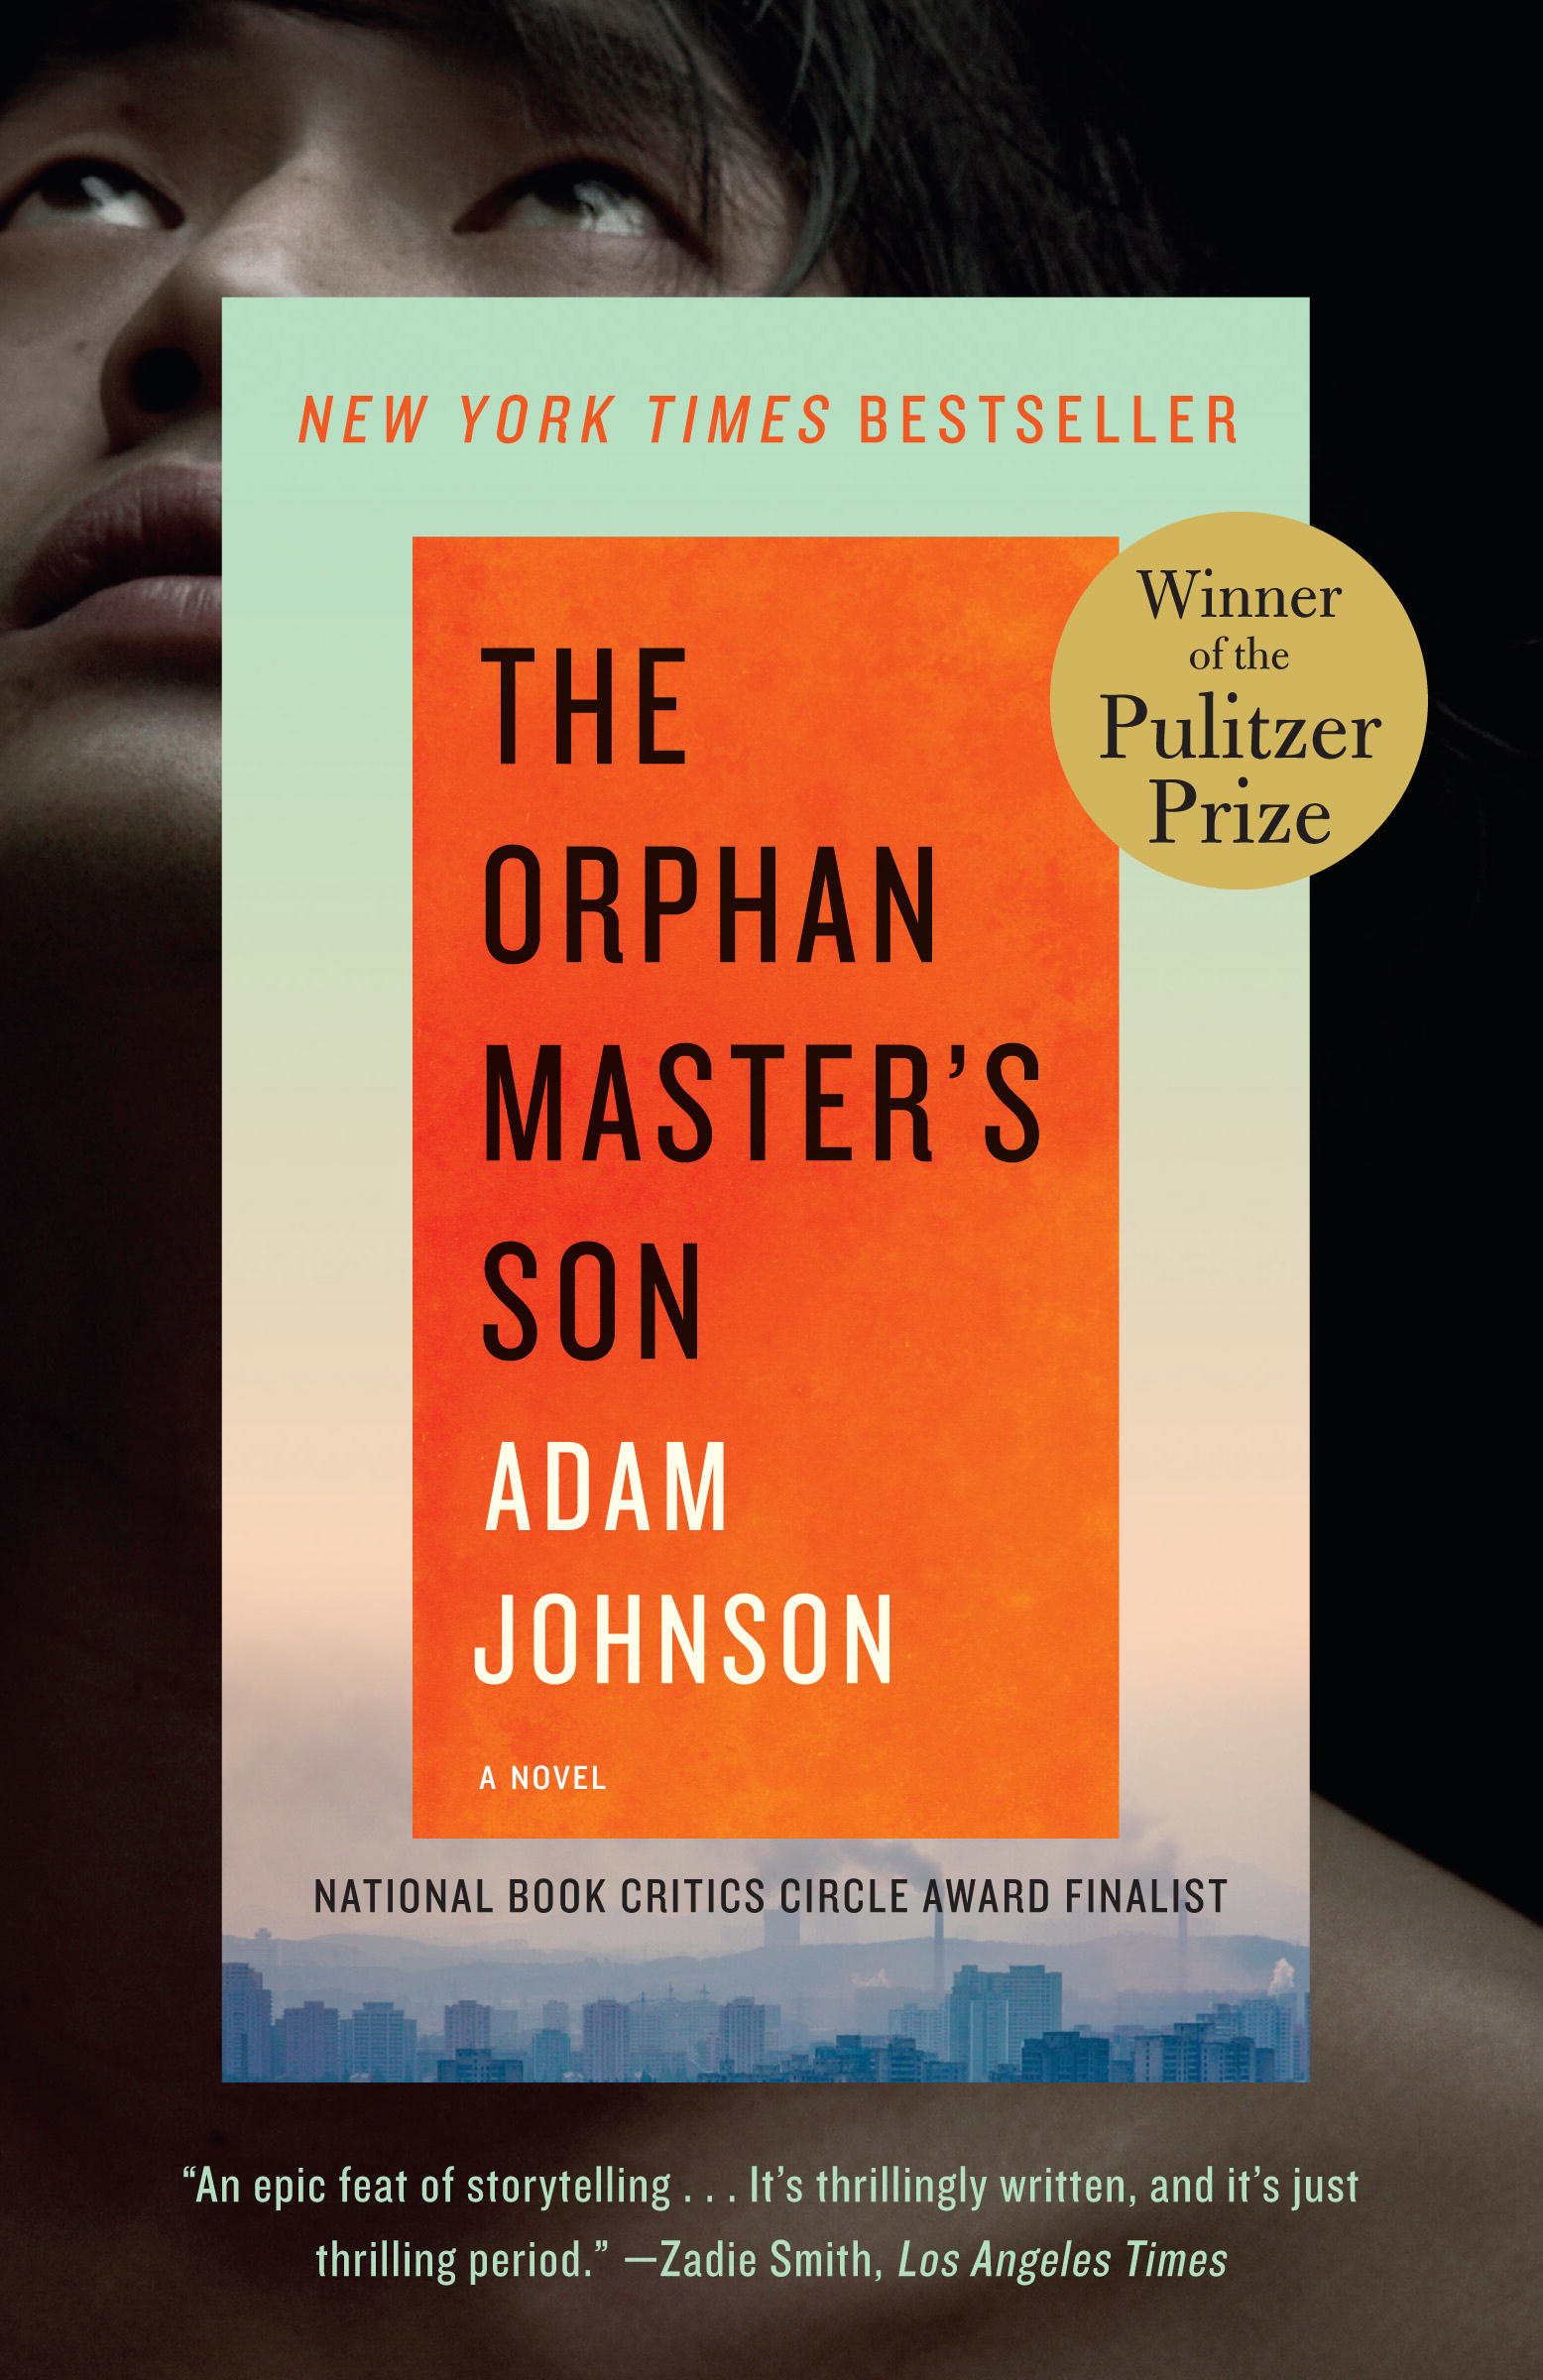 The Orphan Master's Son, winner of the Pulitzer Prize for fiction